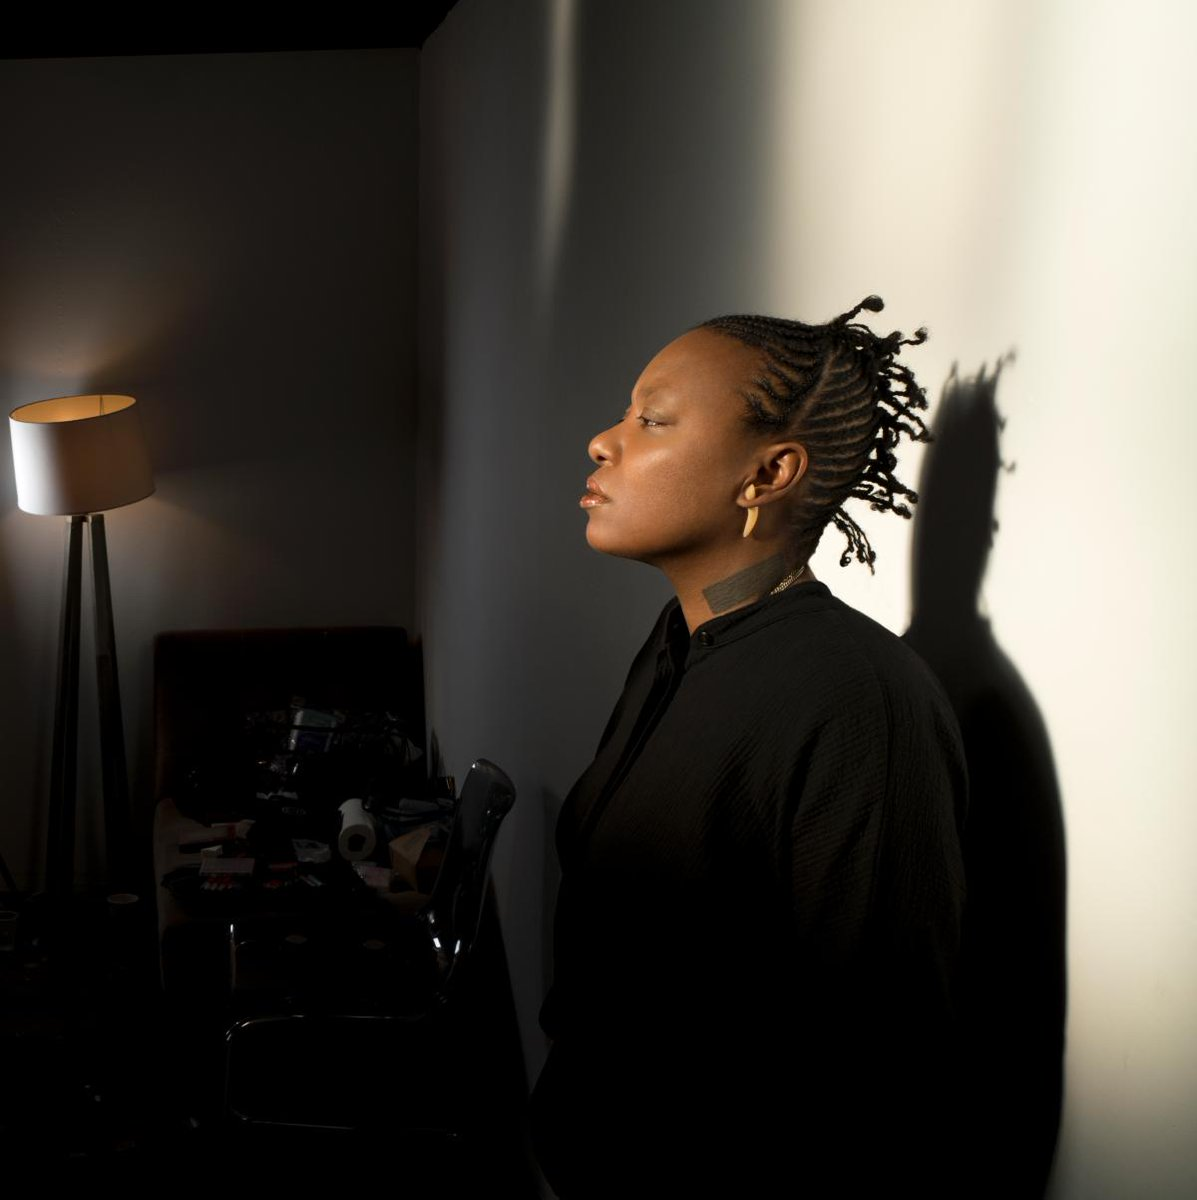 Don't miss bassist, singer-songwriter, Meshell Ndegeocello (@OfficialMeshell) with special guest Hanna Benn (@HannaBenn) live at The Kessler Friday, January 18th! Grab your tickets today!  http://ow.ly/aHy330n2ktR  #thekessler #oakcliff